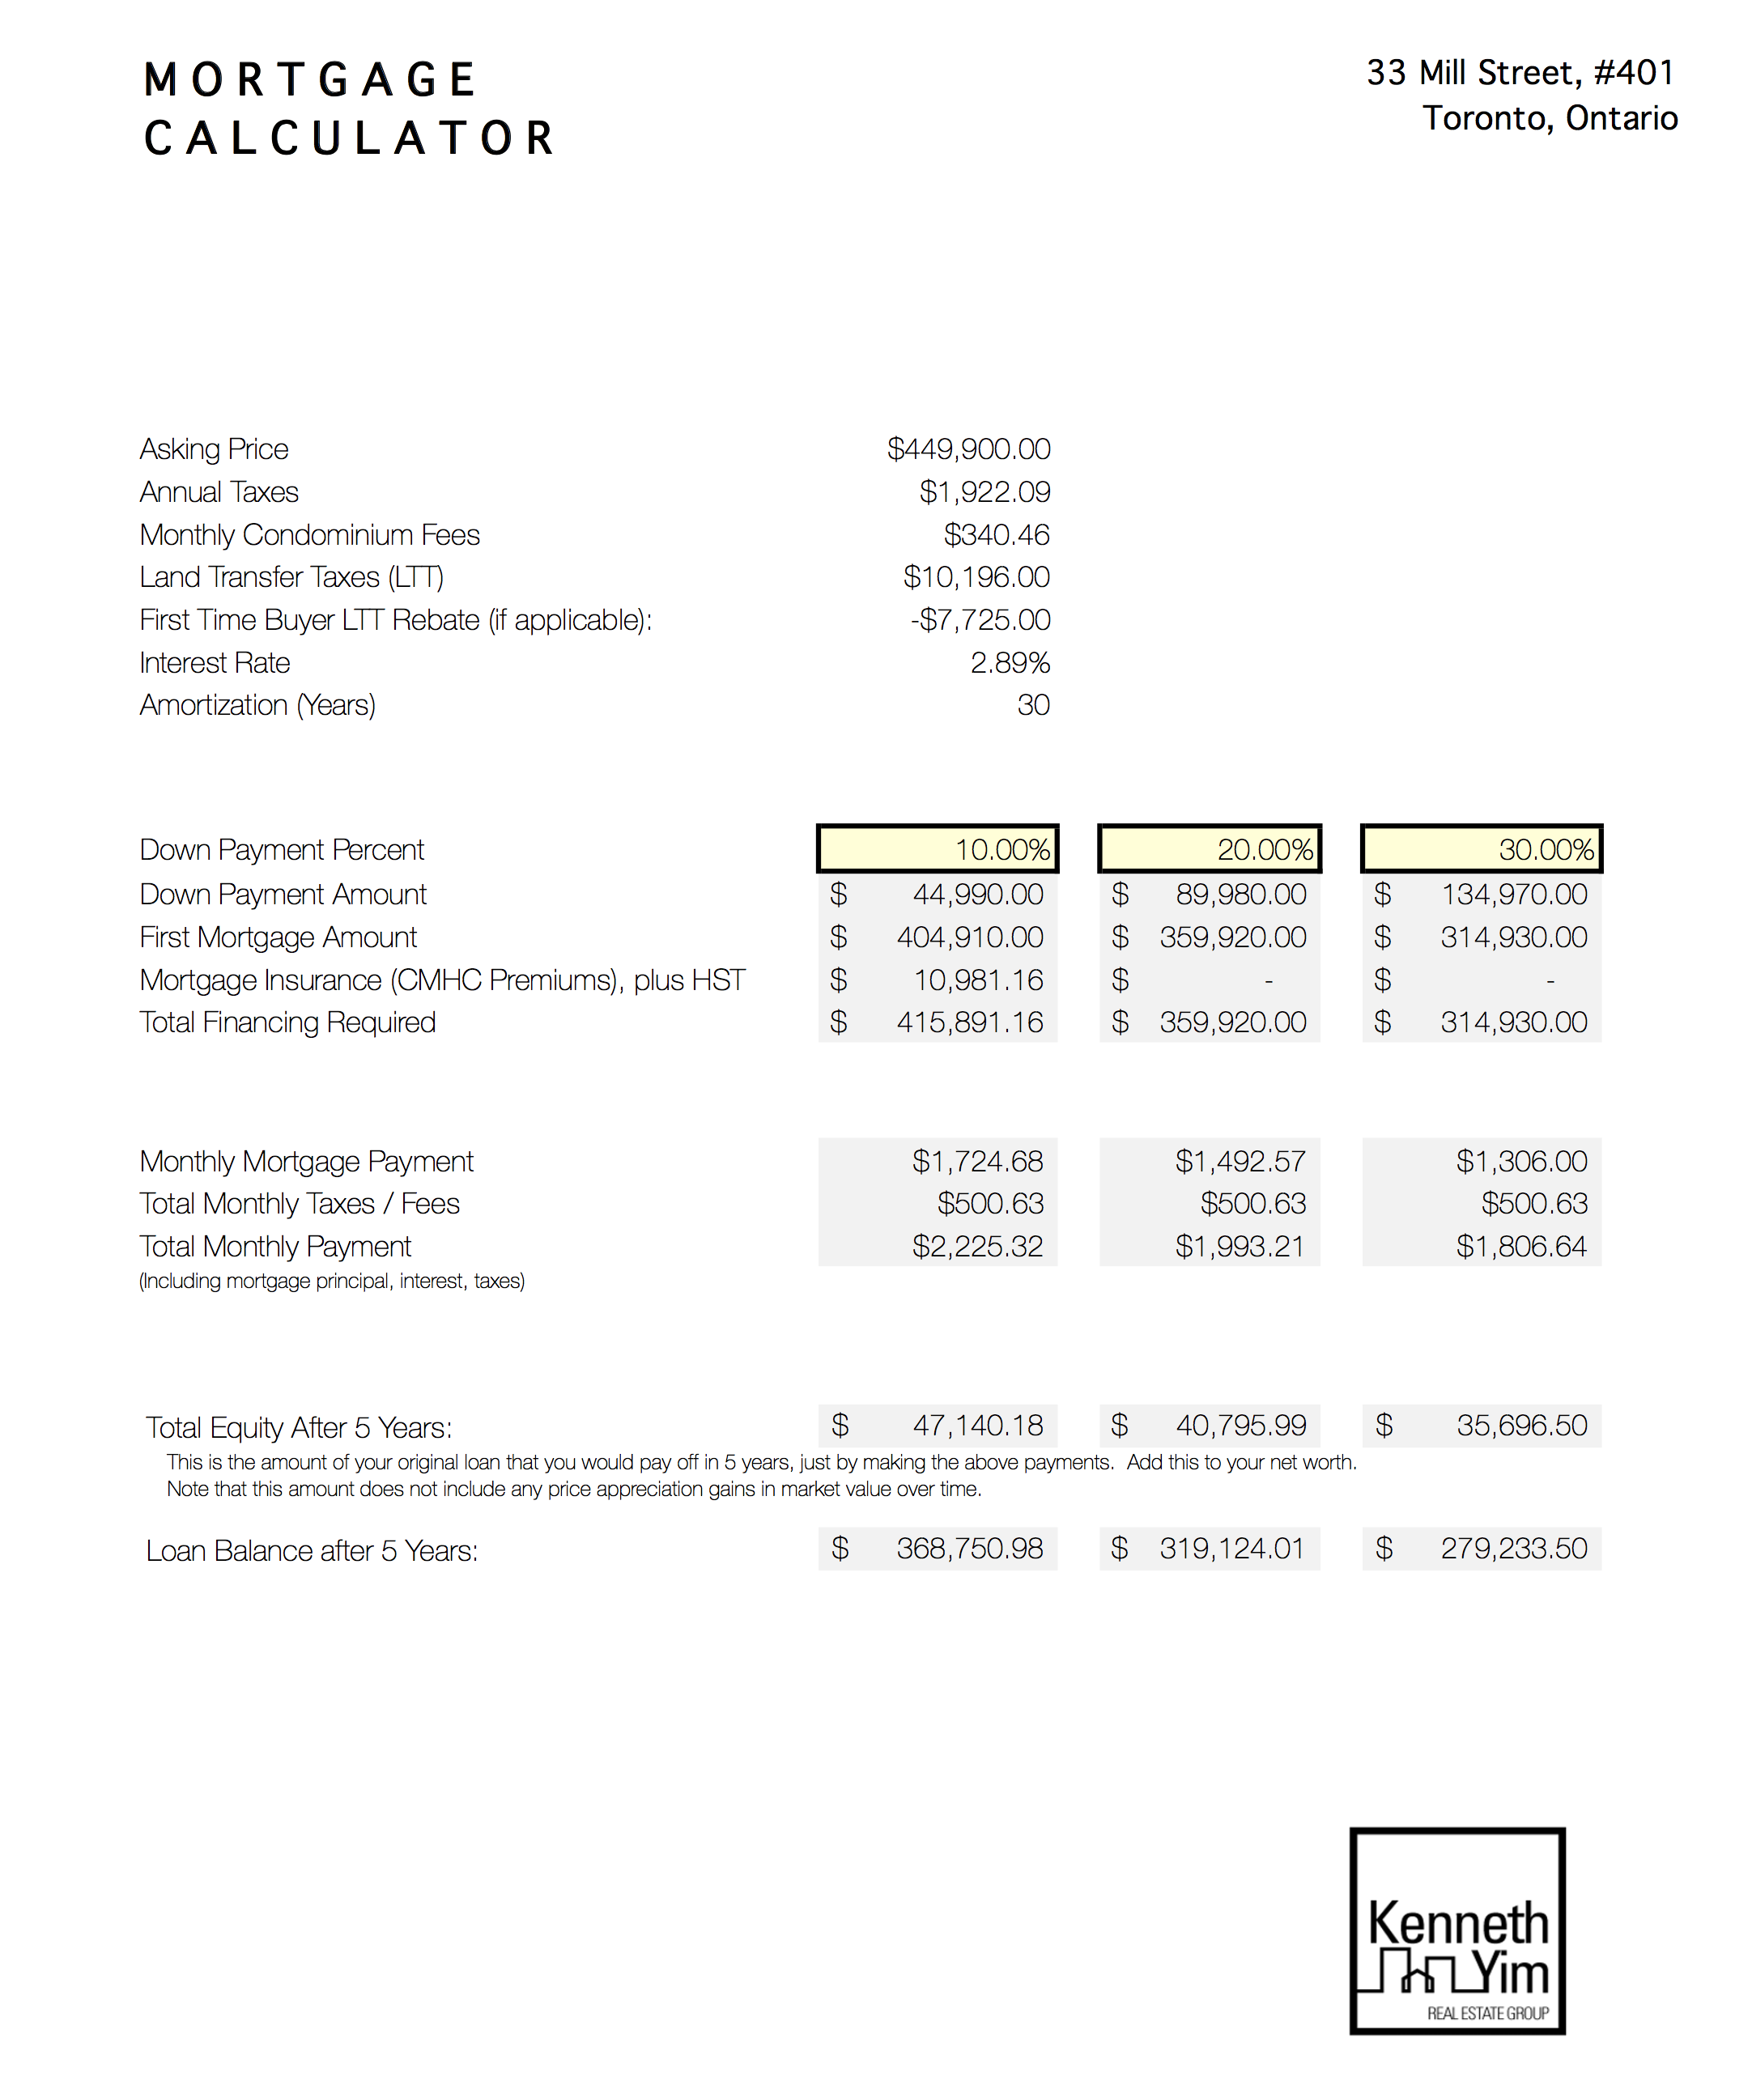 33 Mill Street 401 - Mortgage Calculator JPG.png